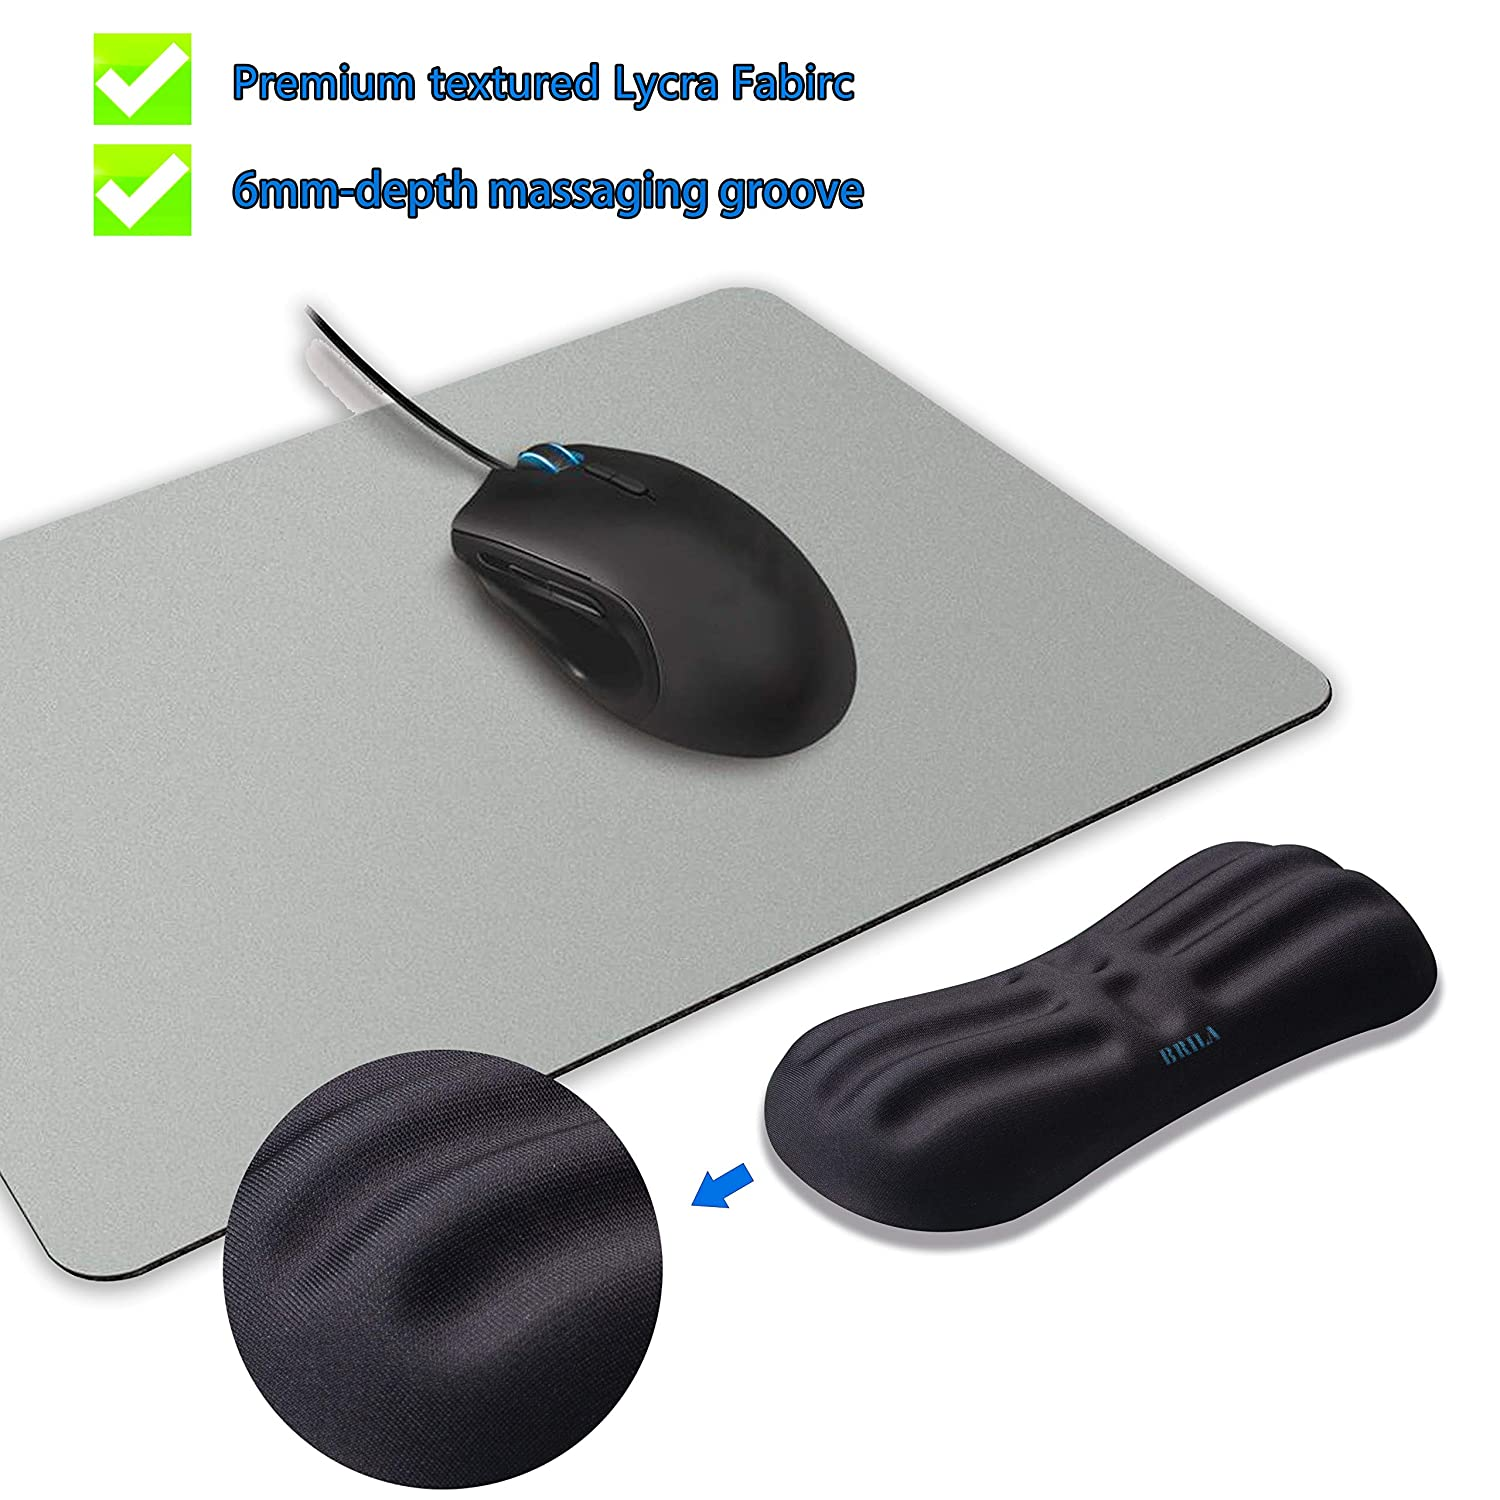 BRILA Gaming Mouse Wrist Rest Hand Pillow Support Pad PC Gaming Mice Ergonomic Design Comfy Soft Memory Foam Gel Padded Non-Slip Slim Wrist Cushion for Office Work Laptop